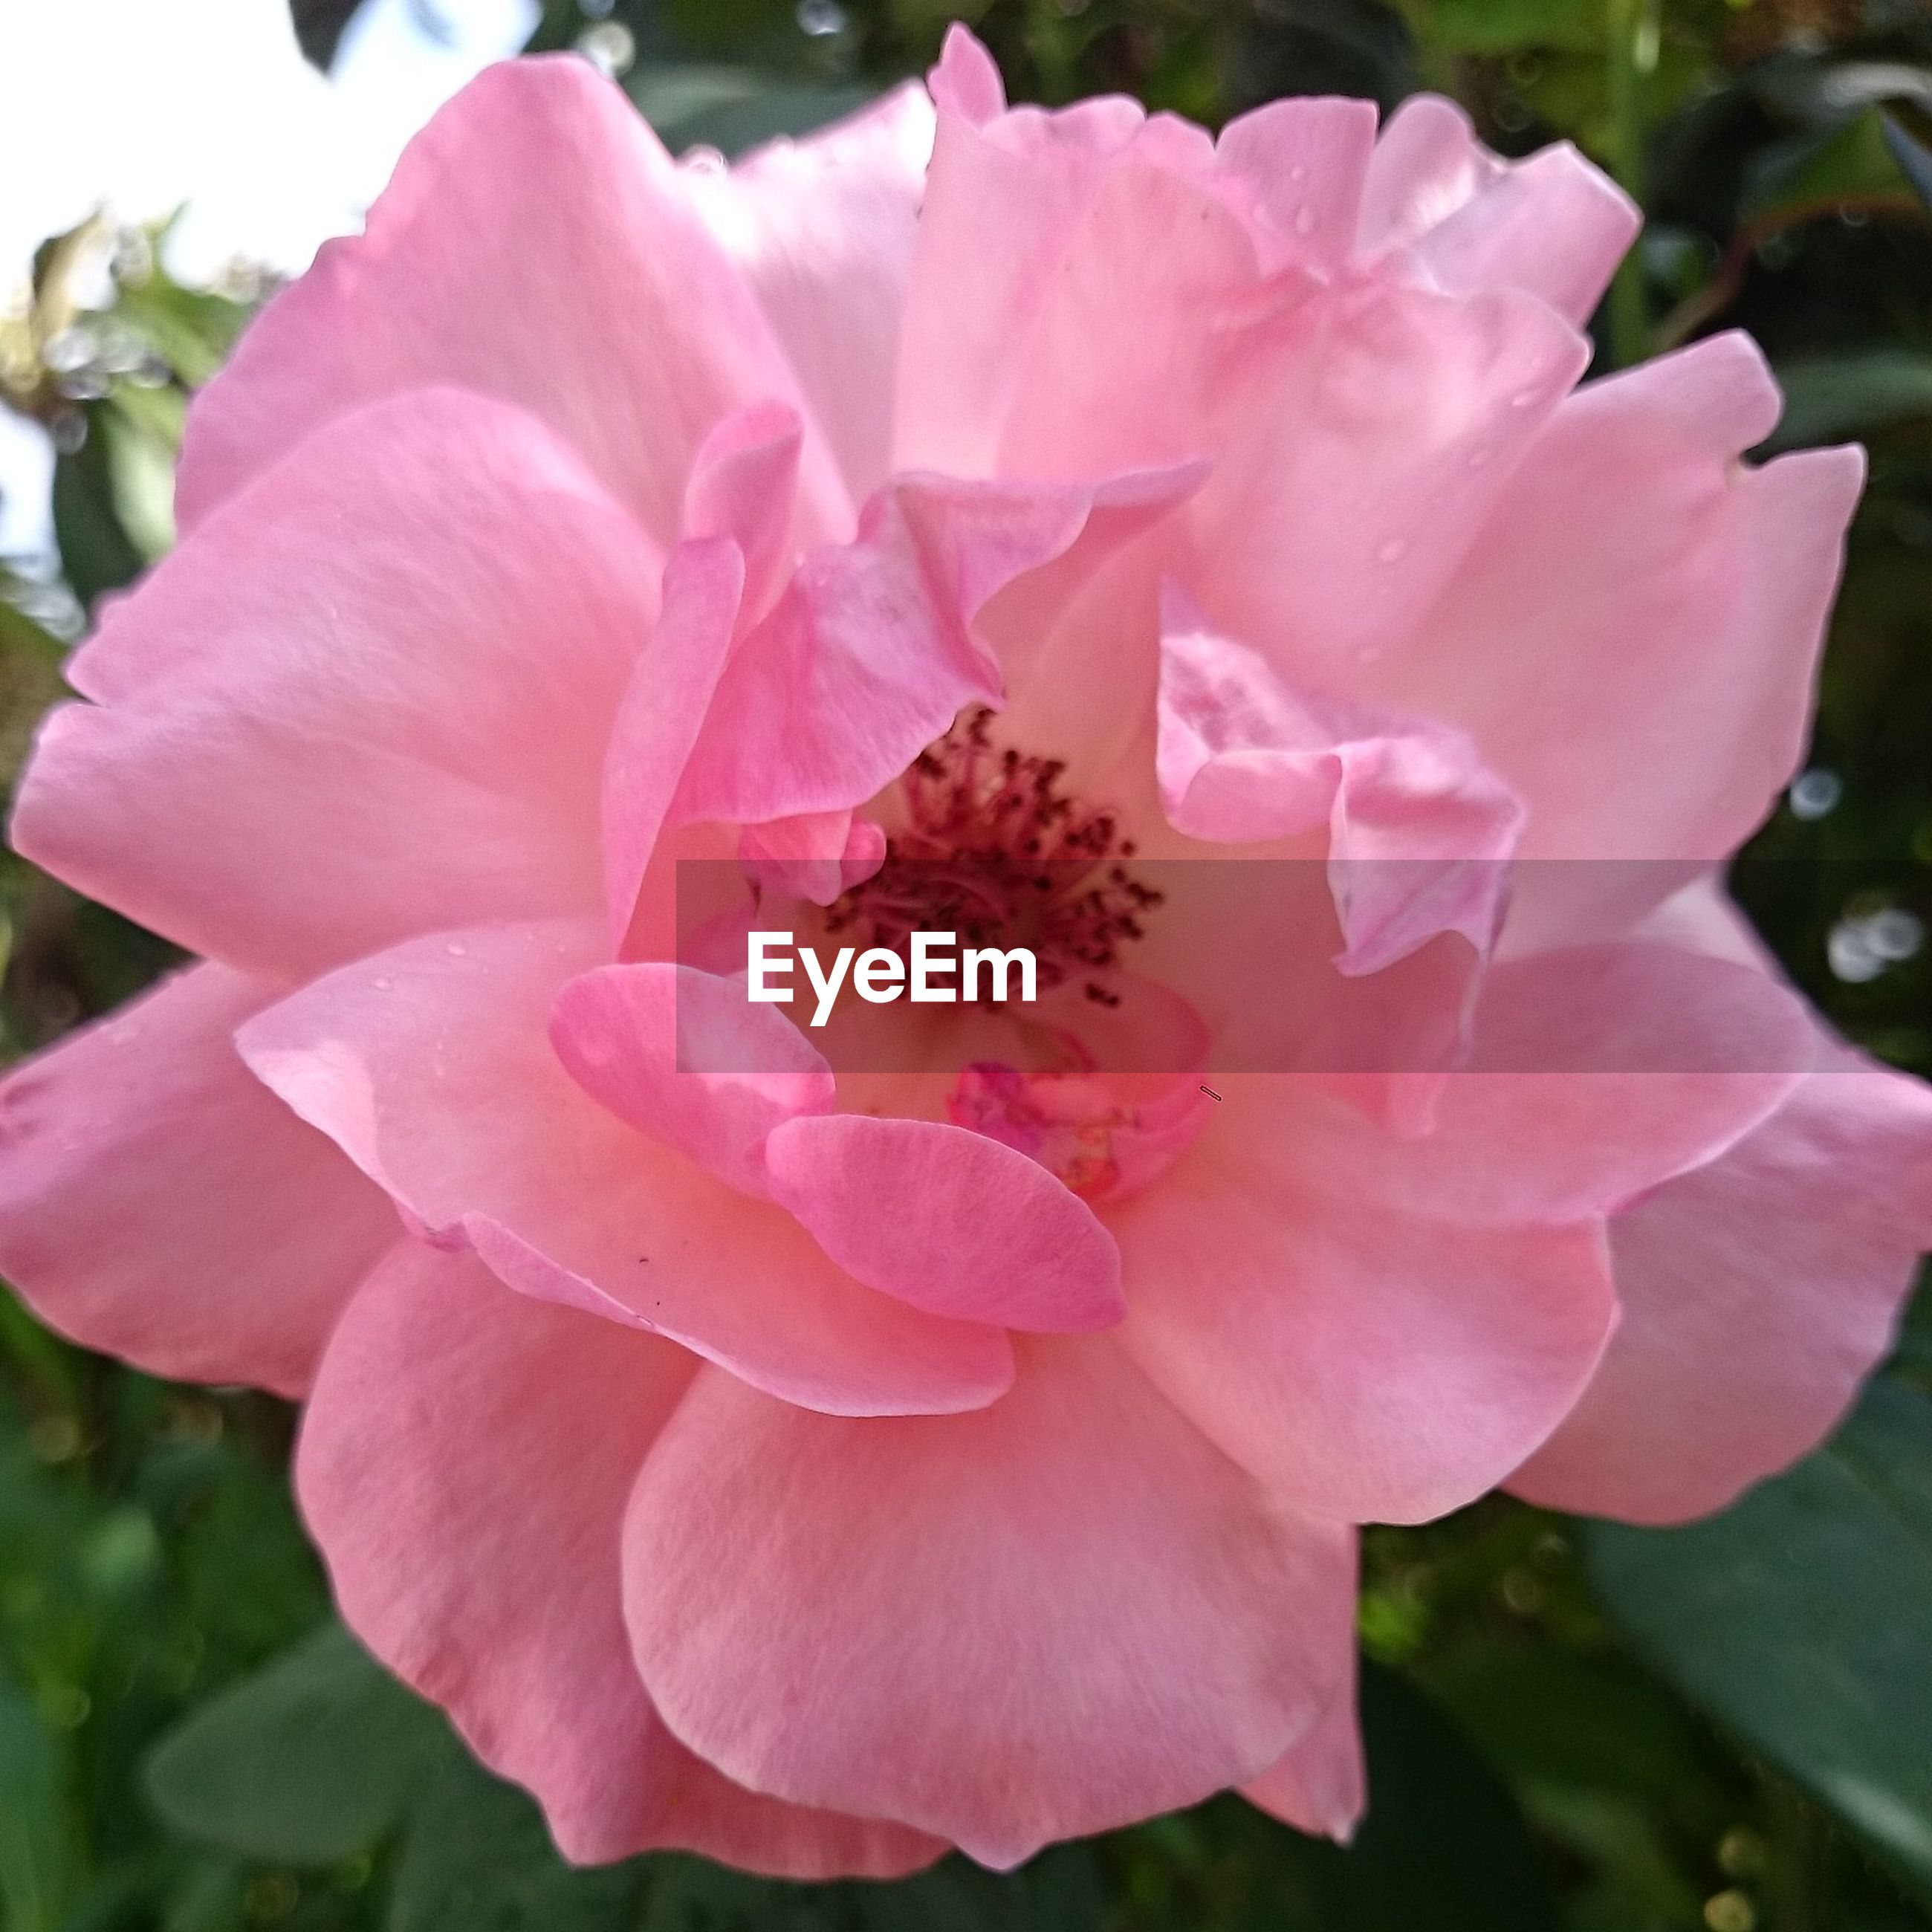 flower, petal, freshness, pink color, flower head, fragility, close-up, beauty in nature, growth, focus on foreground, nature, blooming, single flower, plant, insect, pollen, in bloom, pink, stamen, park - man made space